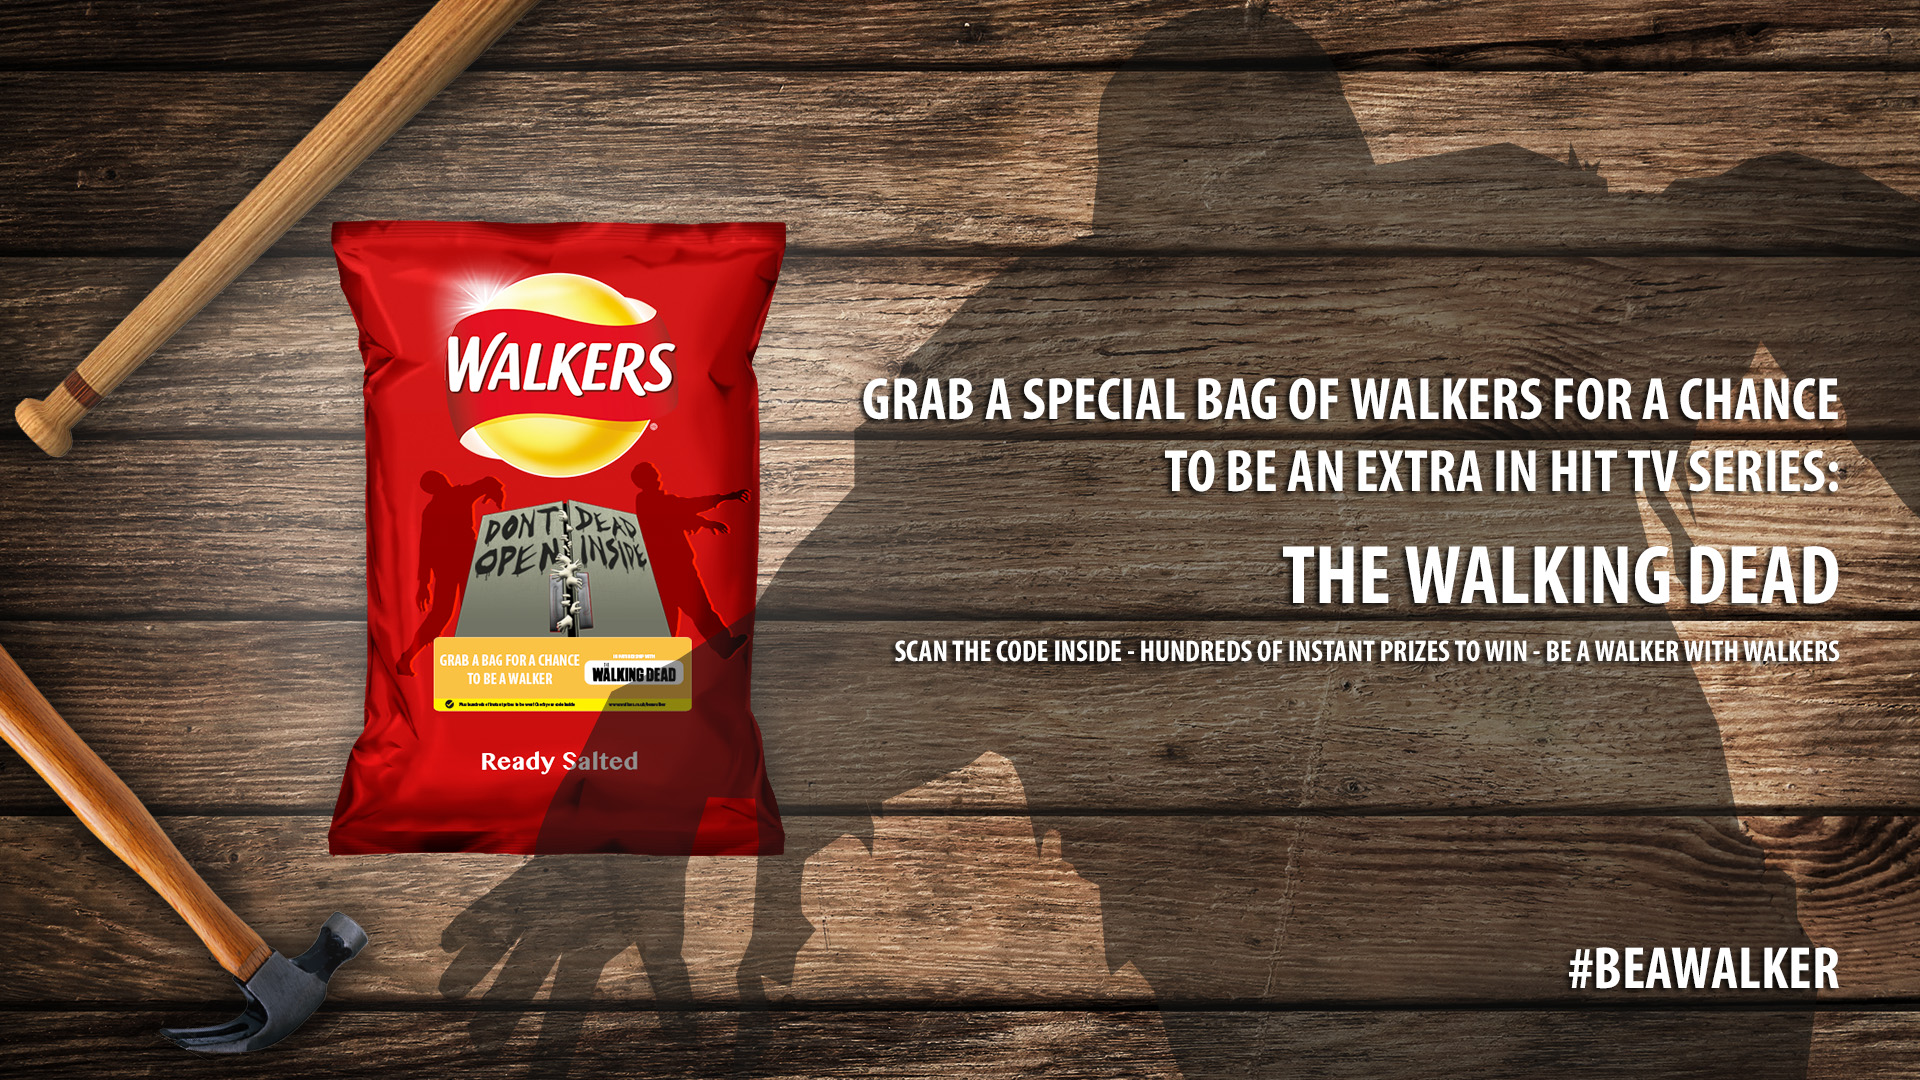 Be a Walker with Walkers